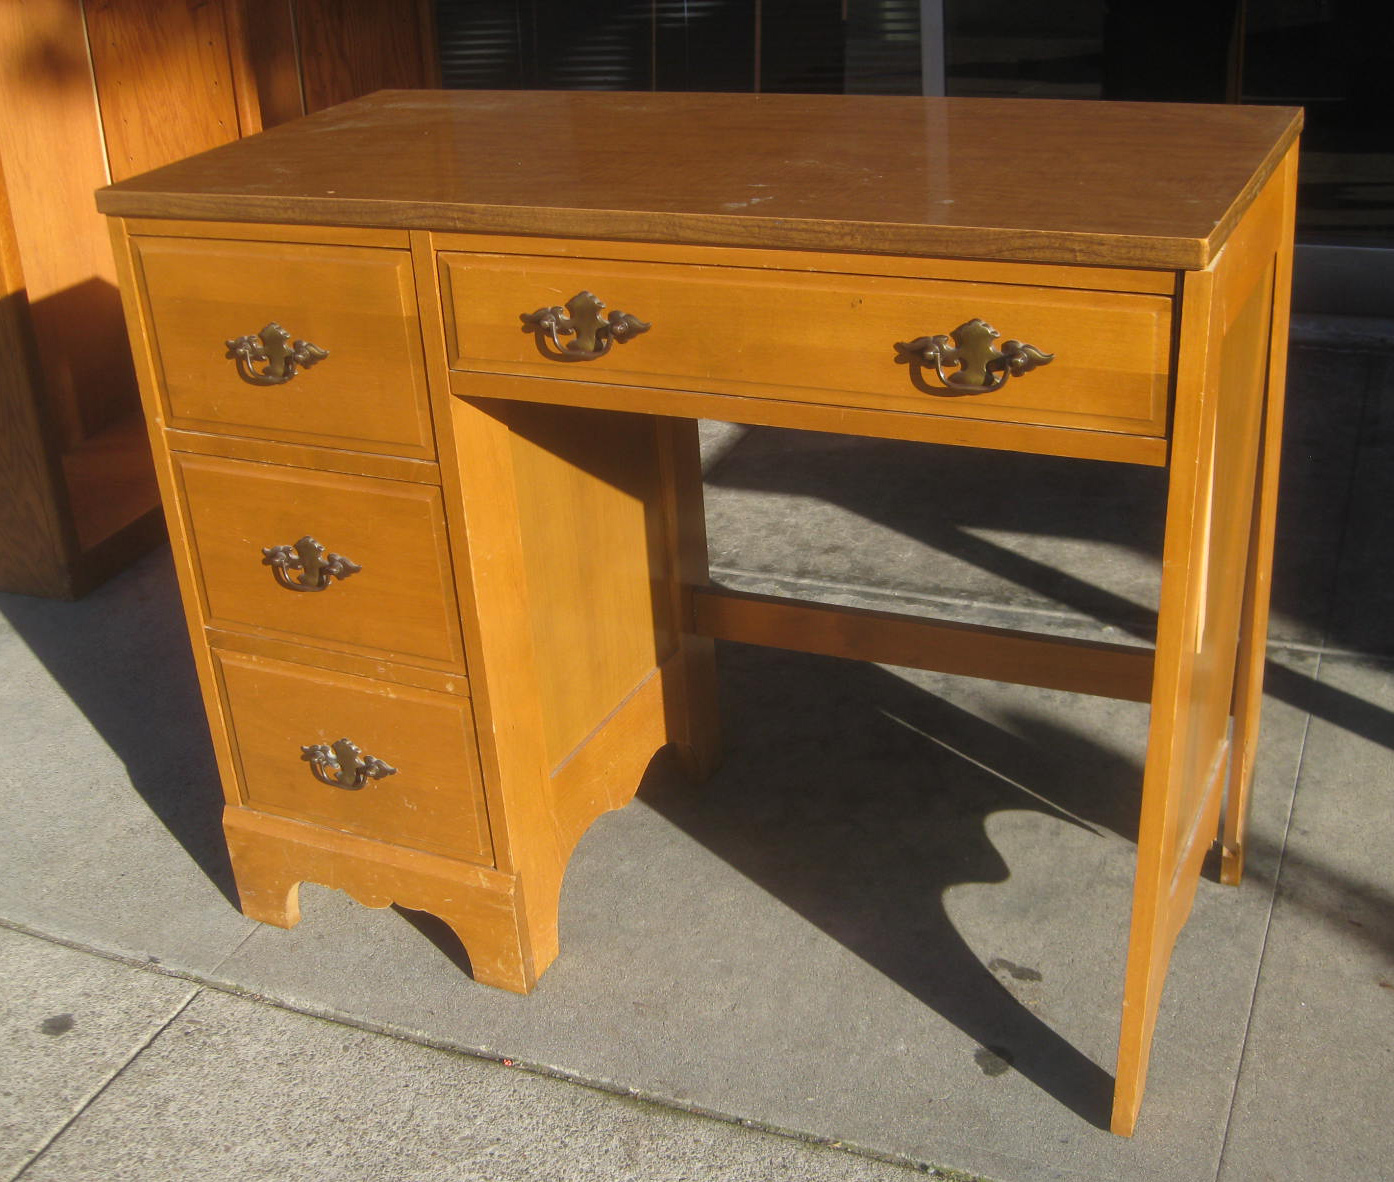 UHURU FURNITURE & COLLECTIBLES: SOLD - Small Wooden Desk - $40